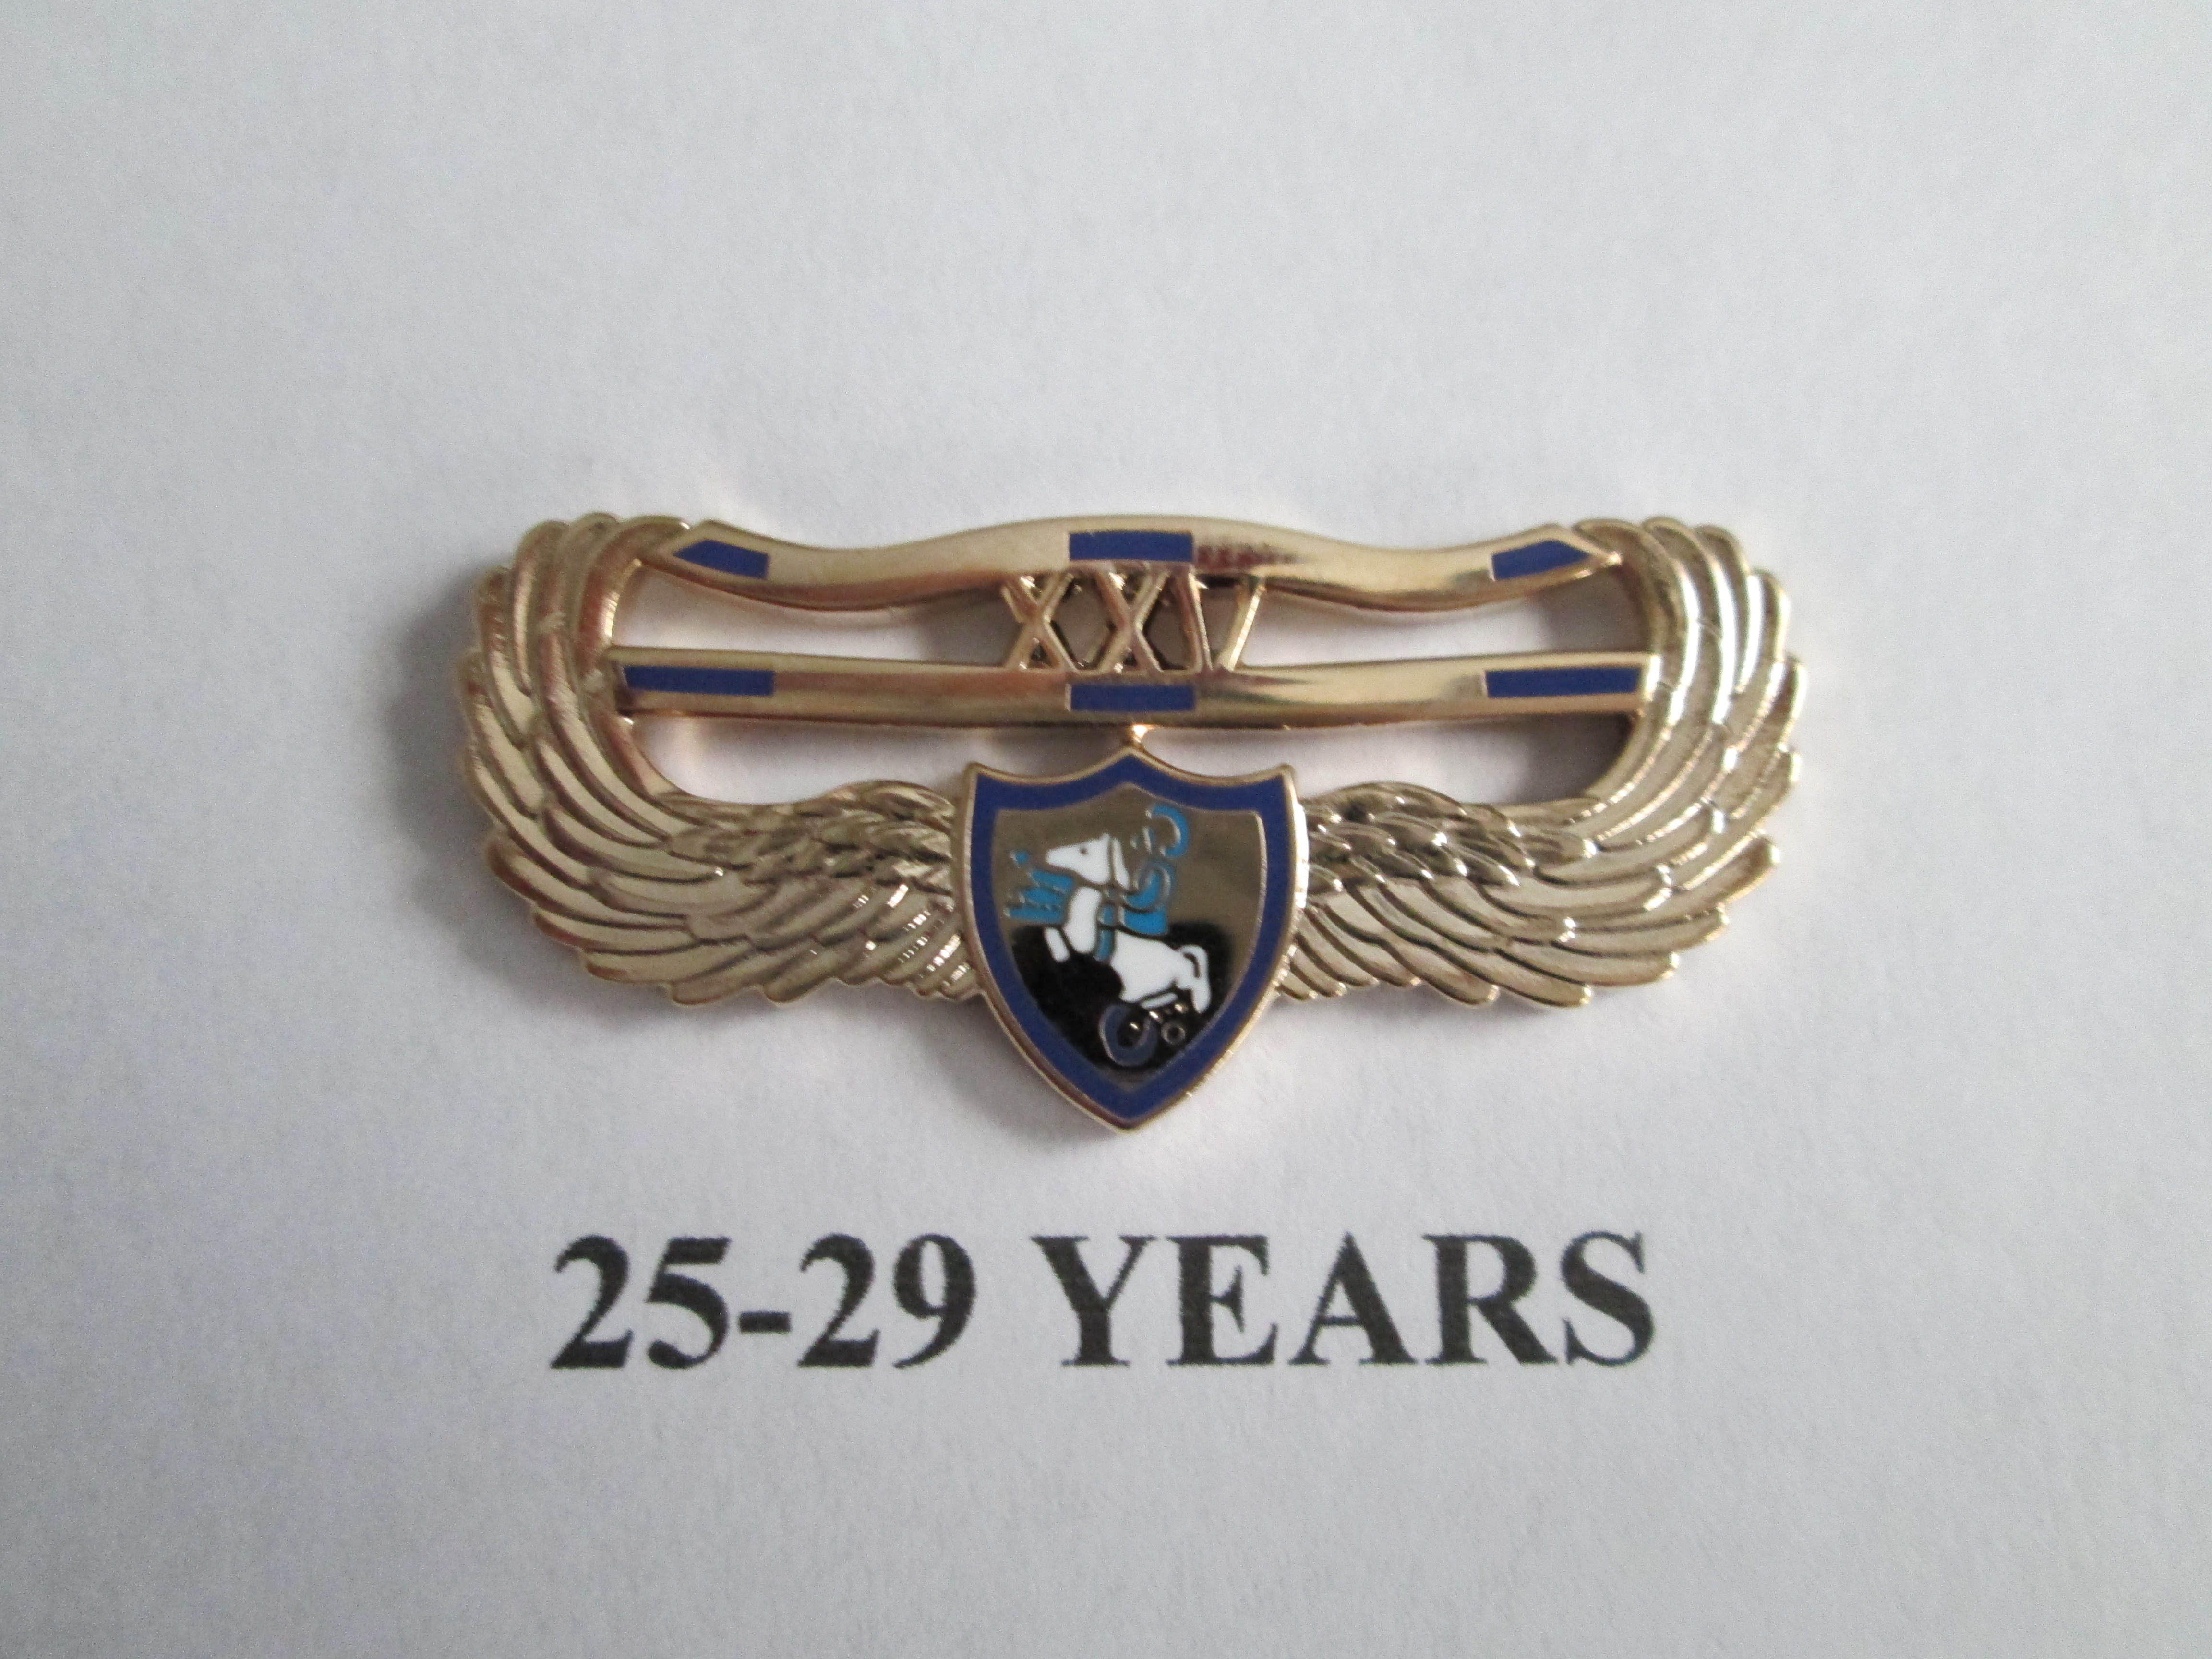 chapter_pins__25___29_years_of_service